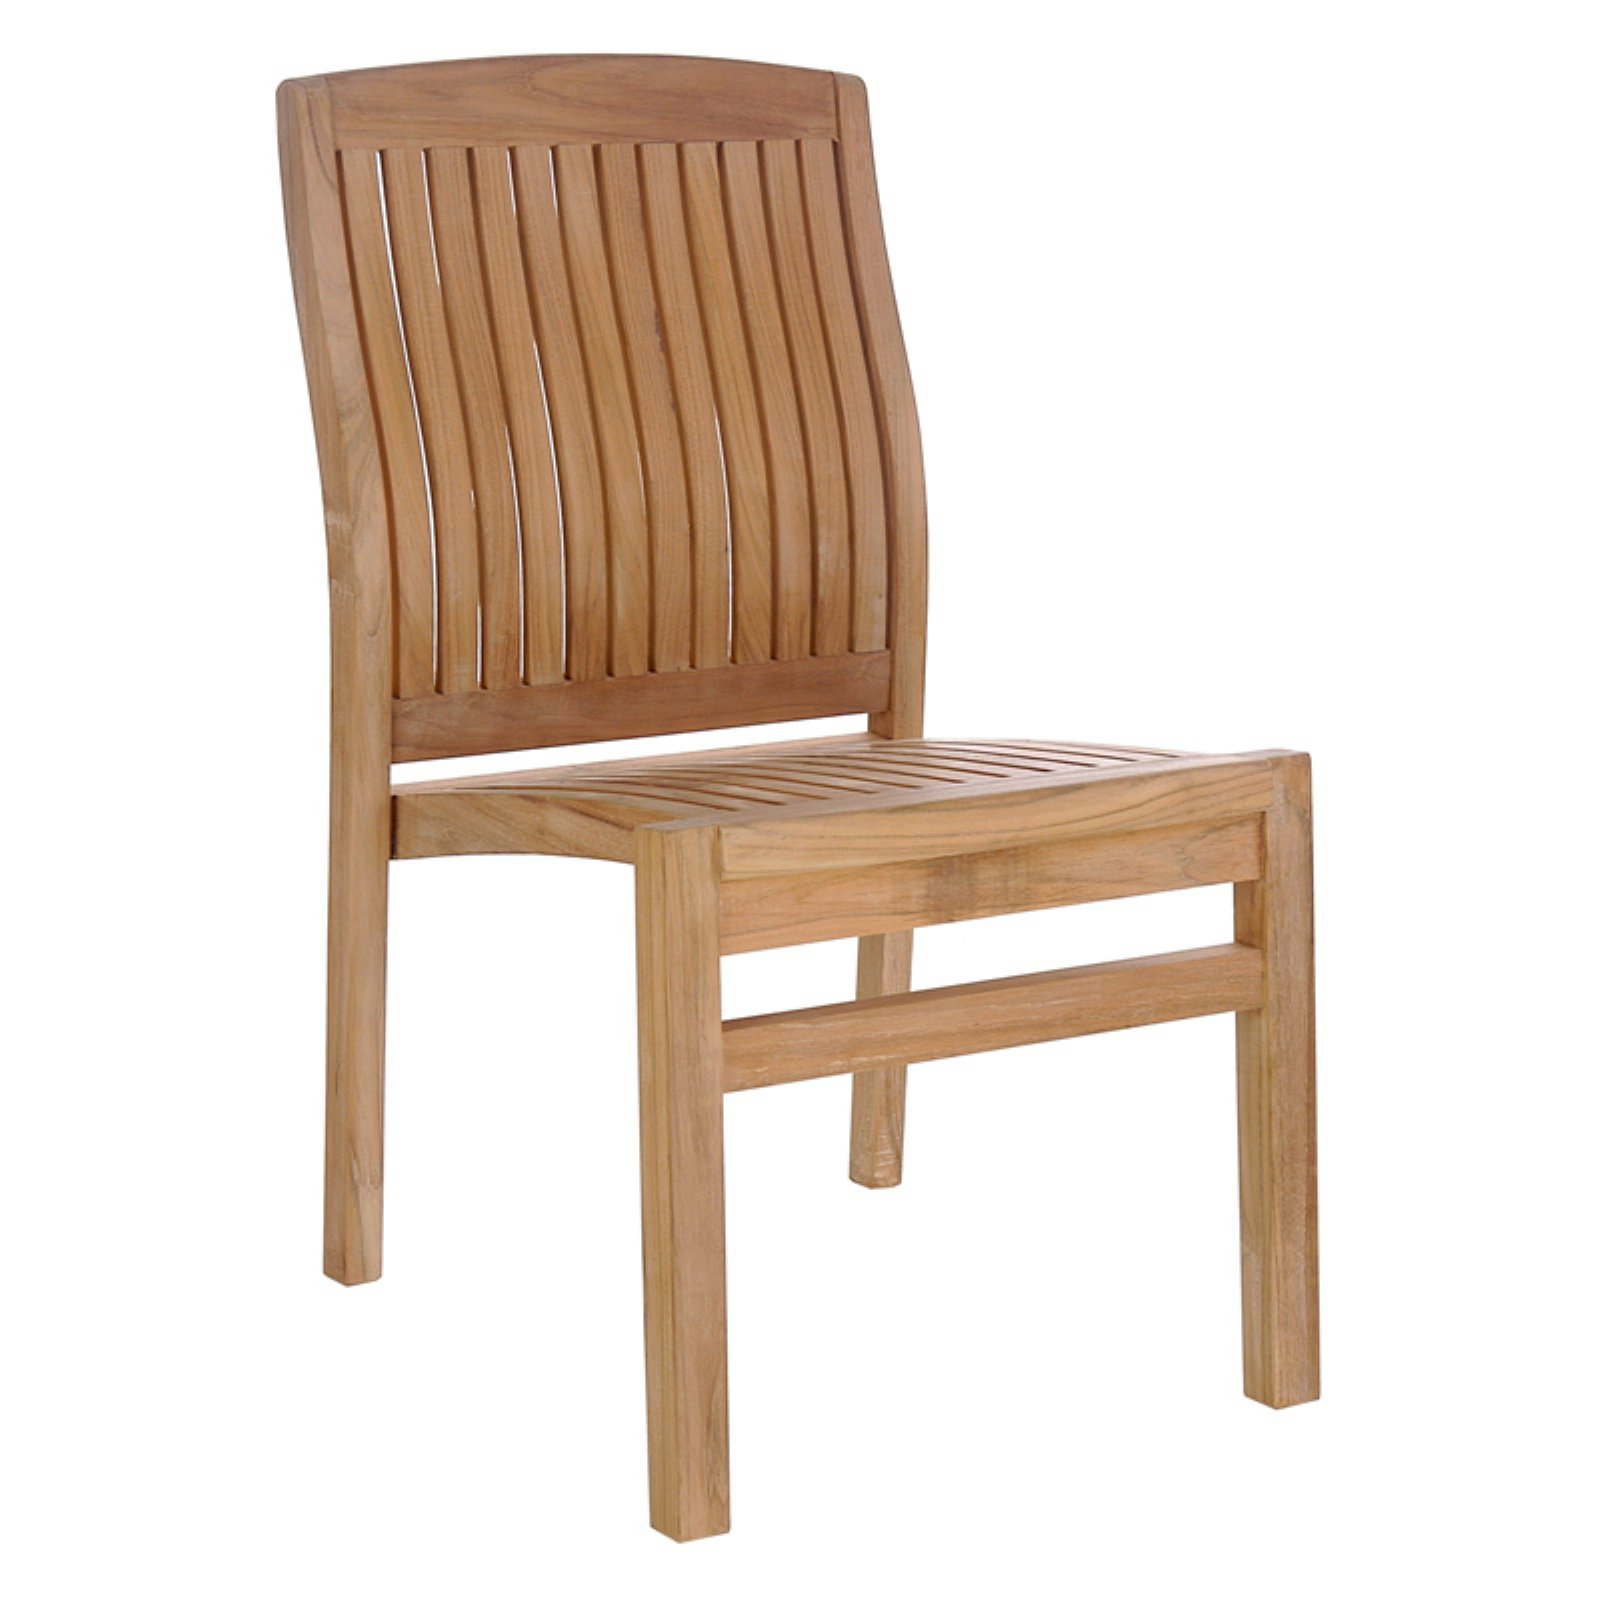 Chic Teak Belize Teak Patio Dining Side Chair by